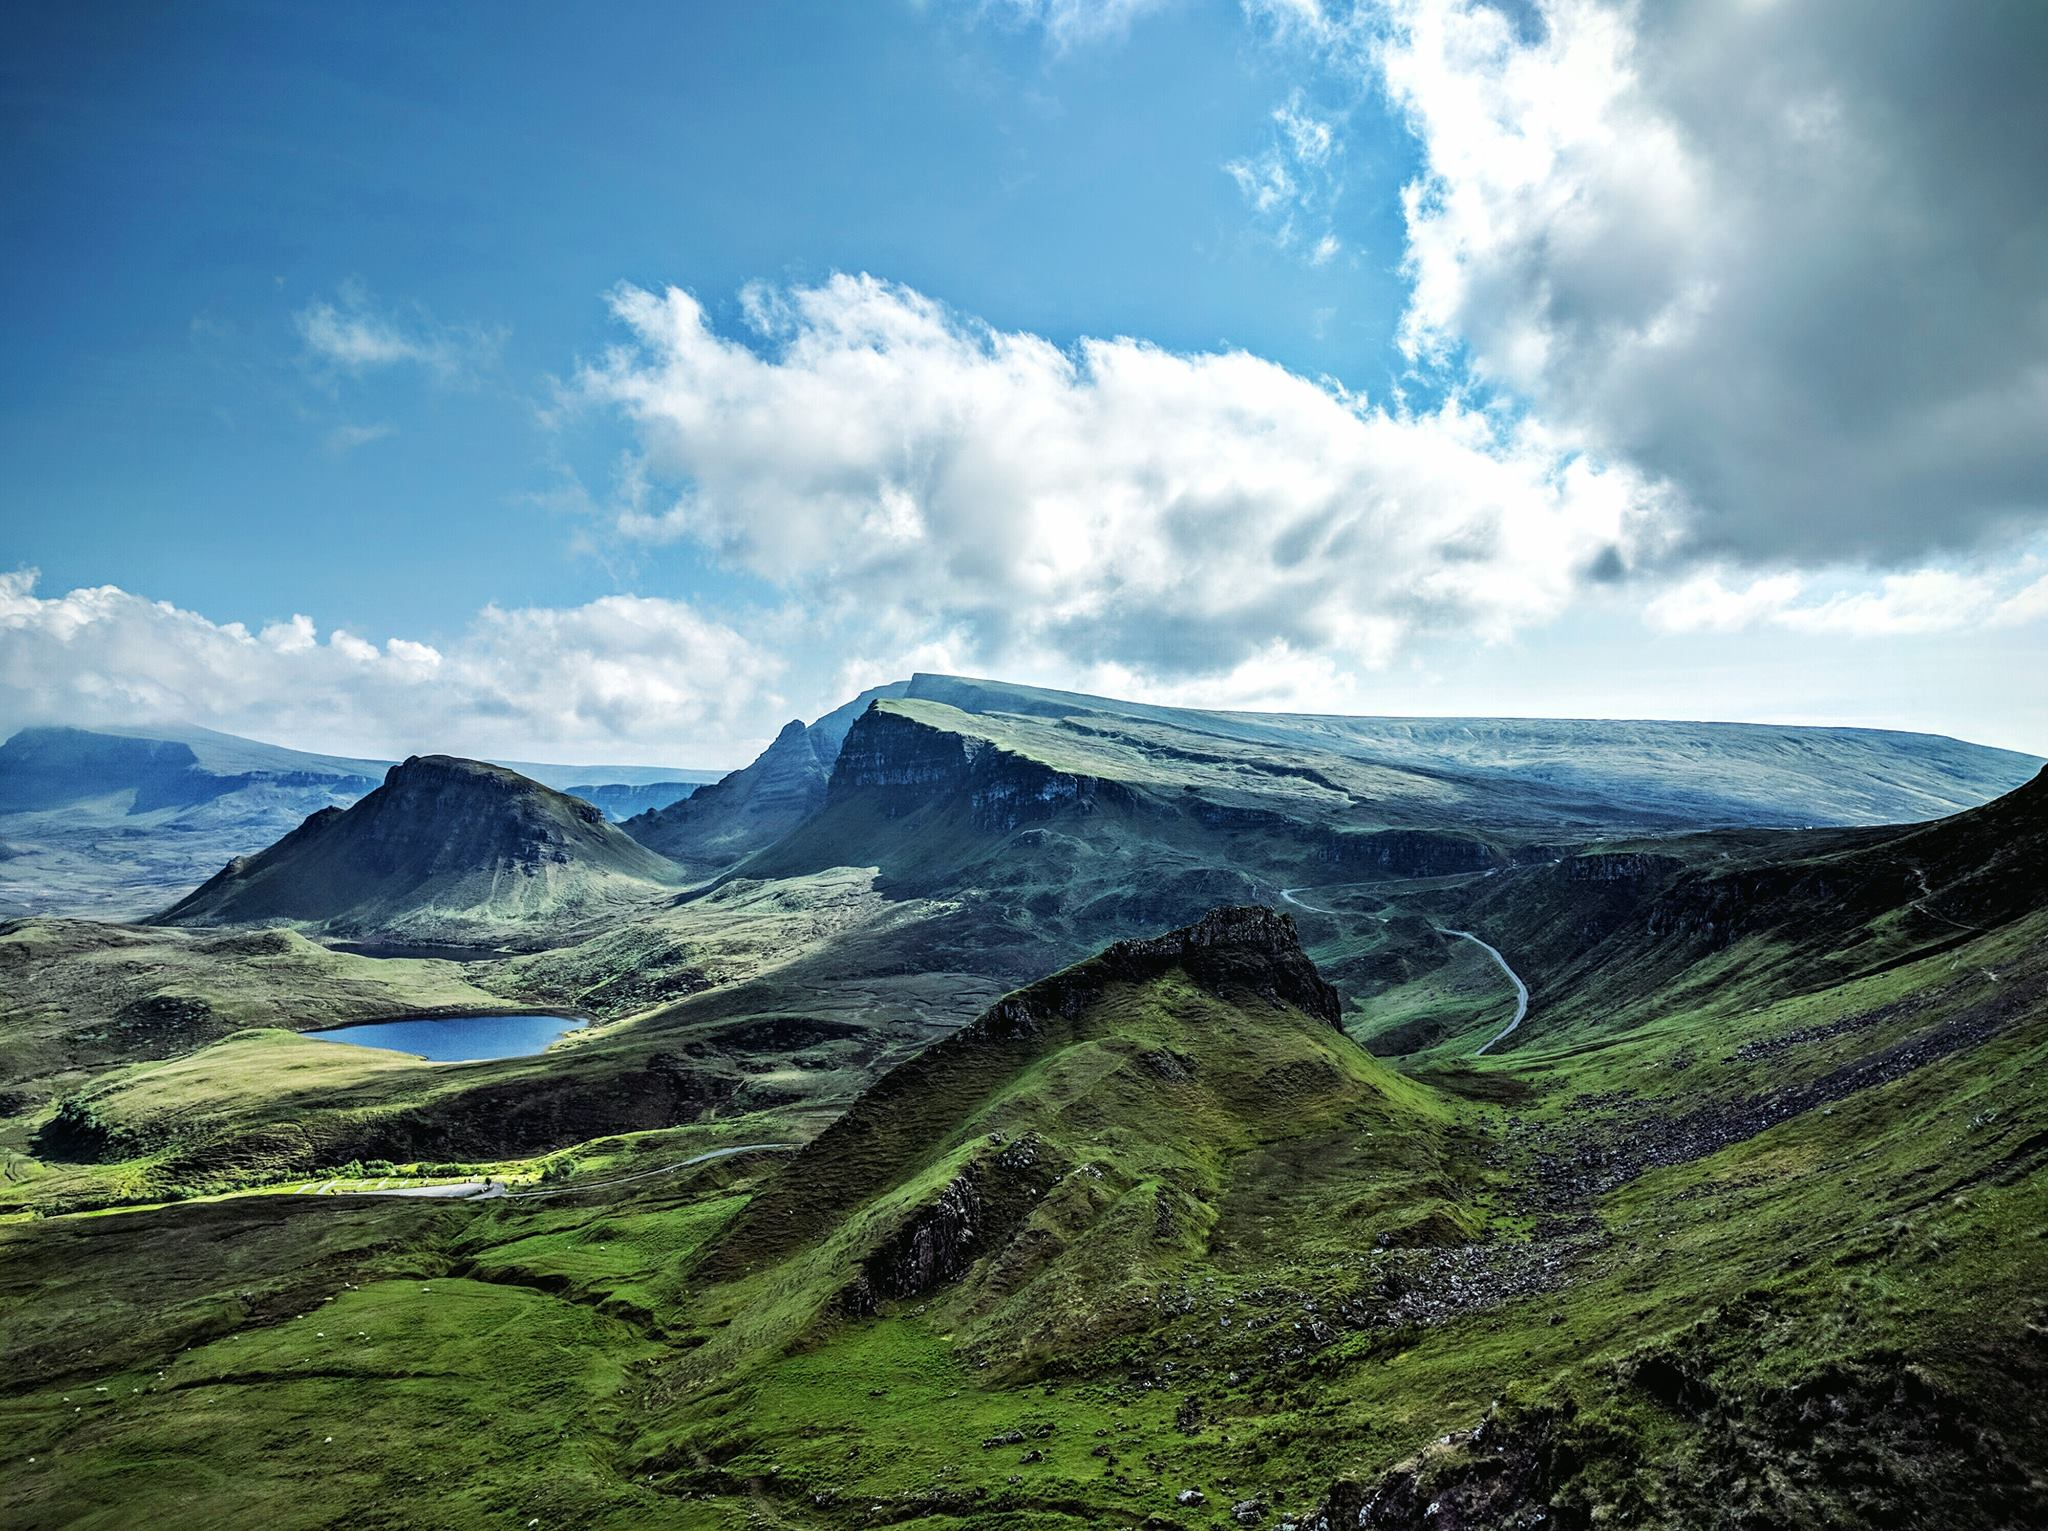 The dramatic Isle of Skye drenched in sunshine. Photo credit: Michael Weaver